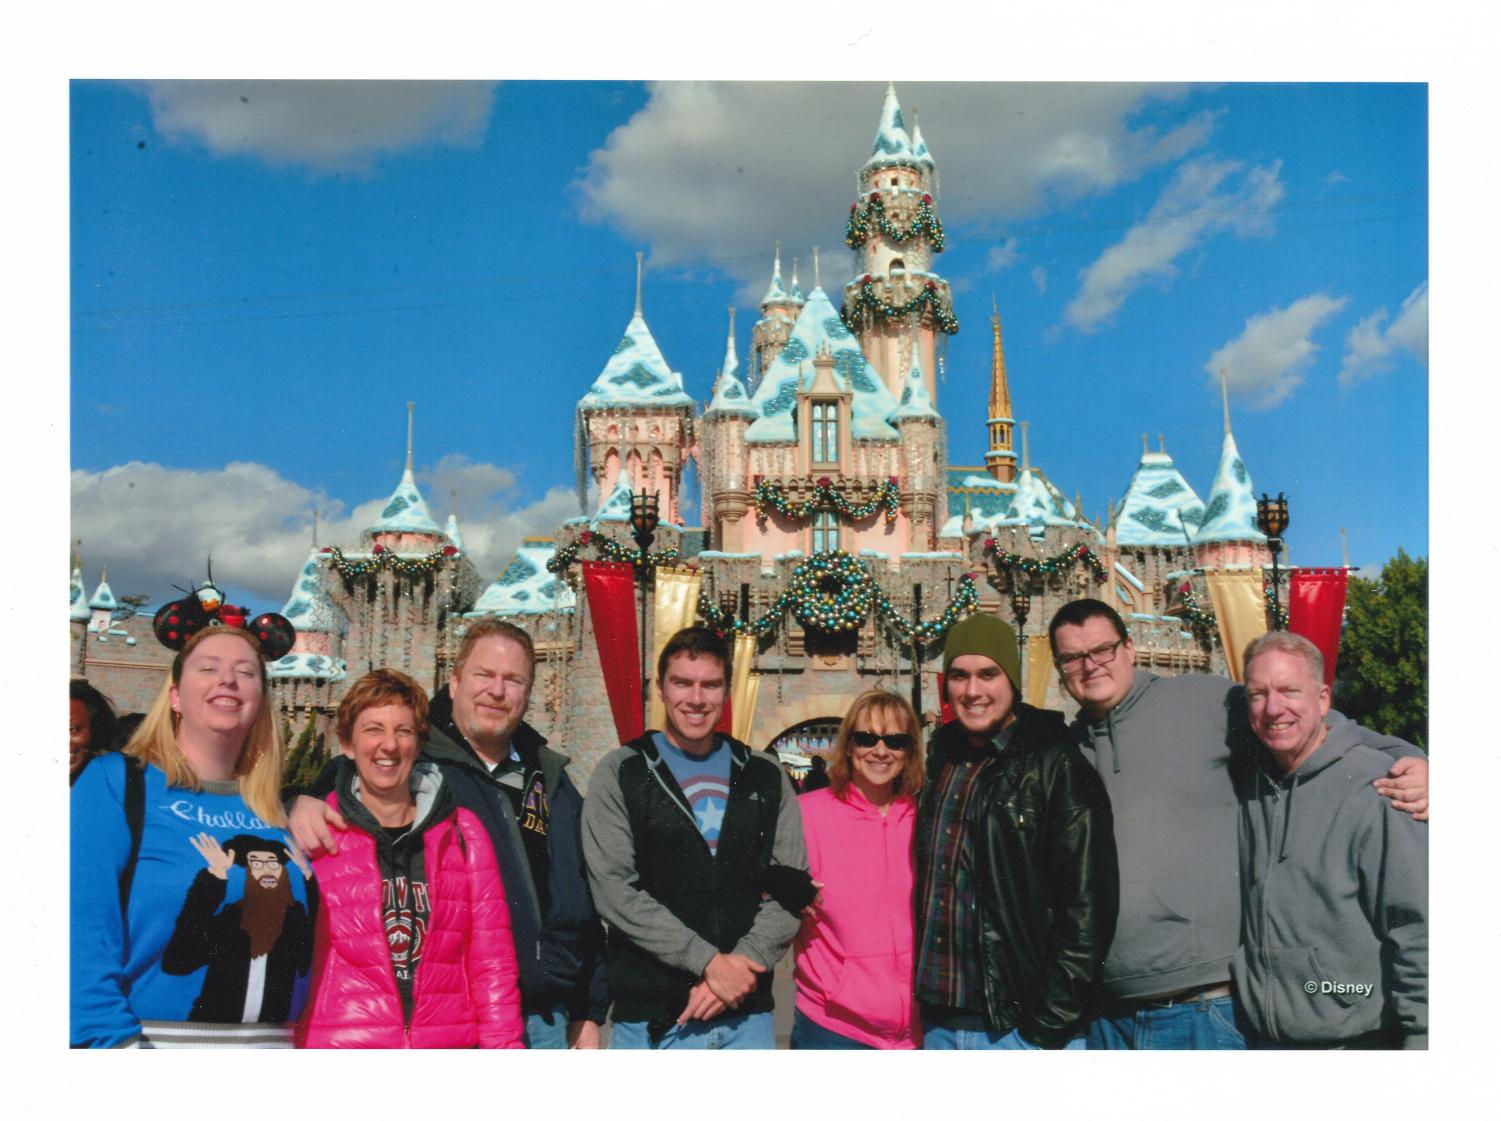 My+family+on+the+right+with+my+paternal+cousin%2C+aunt+and+uncle+on+the+left+at+Disneyland+in+Anaheim%2C+California+on+Christmas+Eve+2016.+Our+family%27s+trip+that+day+would+be+my+mom%27s+last+Christmas+present.